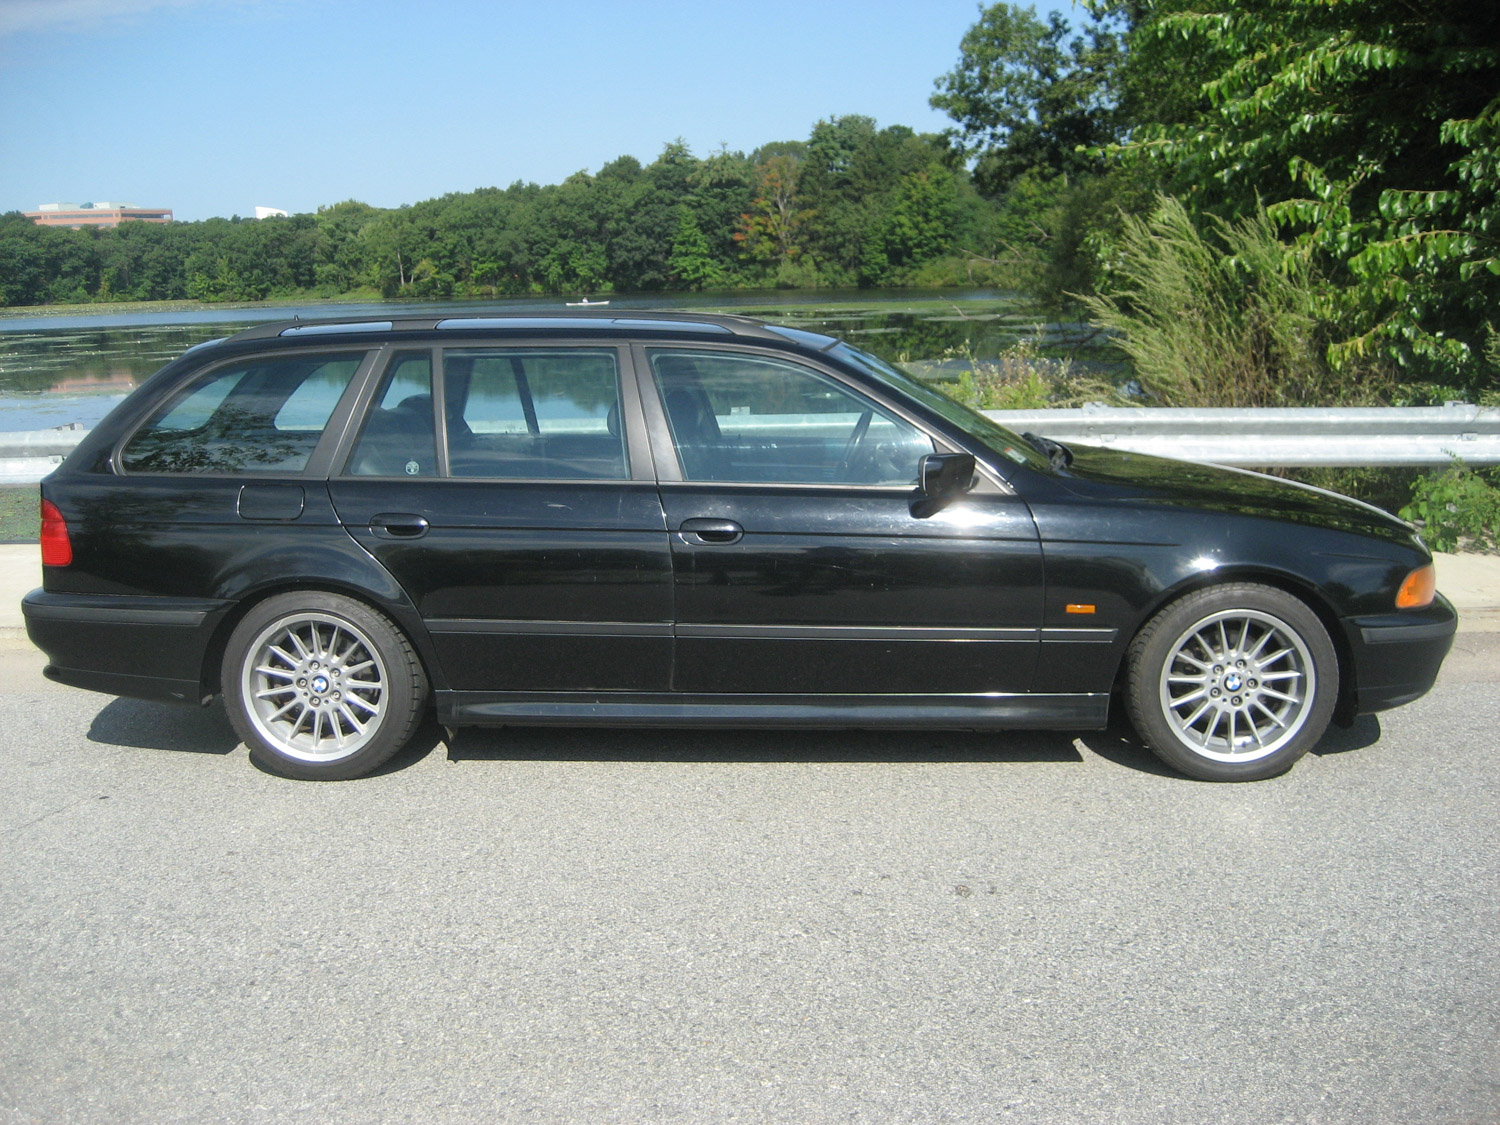 The 1999 BMW 528iT sport wagon was a nice ride for Ethan. It would be for anyone.